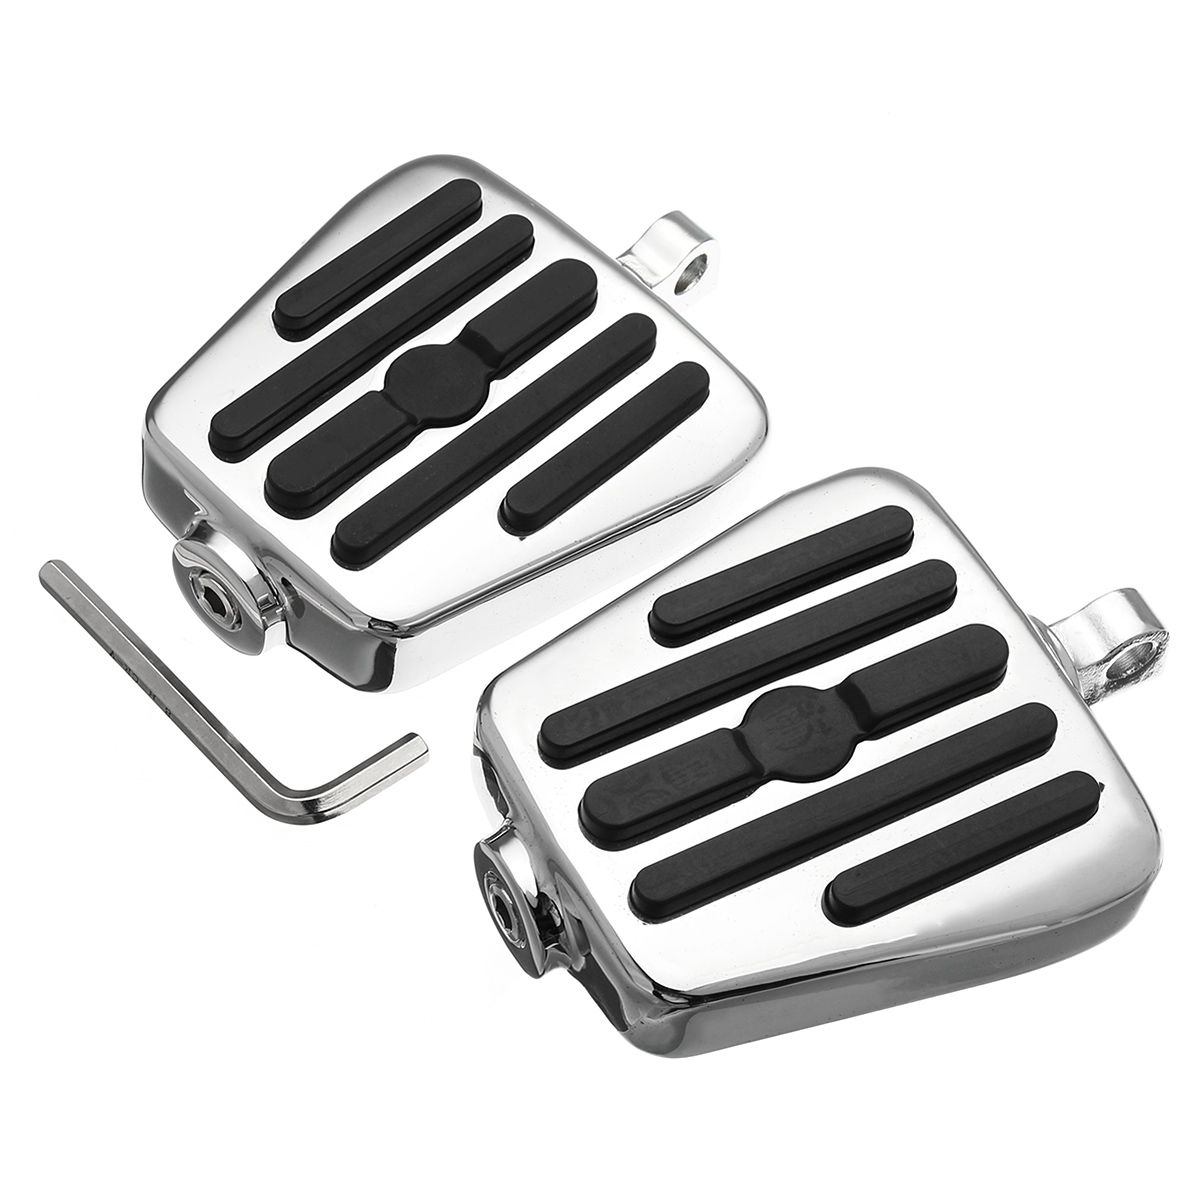 50451-09 Pair Male Mount Footboards Foot Board Pegs Chrome Male Mount Bracket Kits Foot Rests Brand New 1set